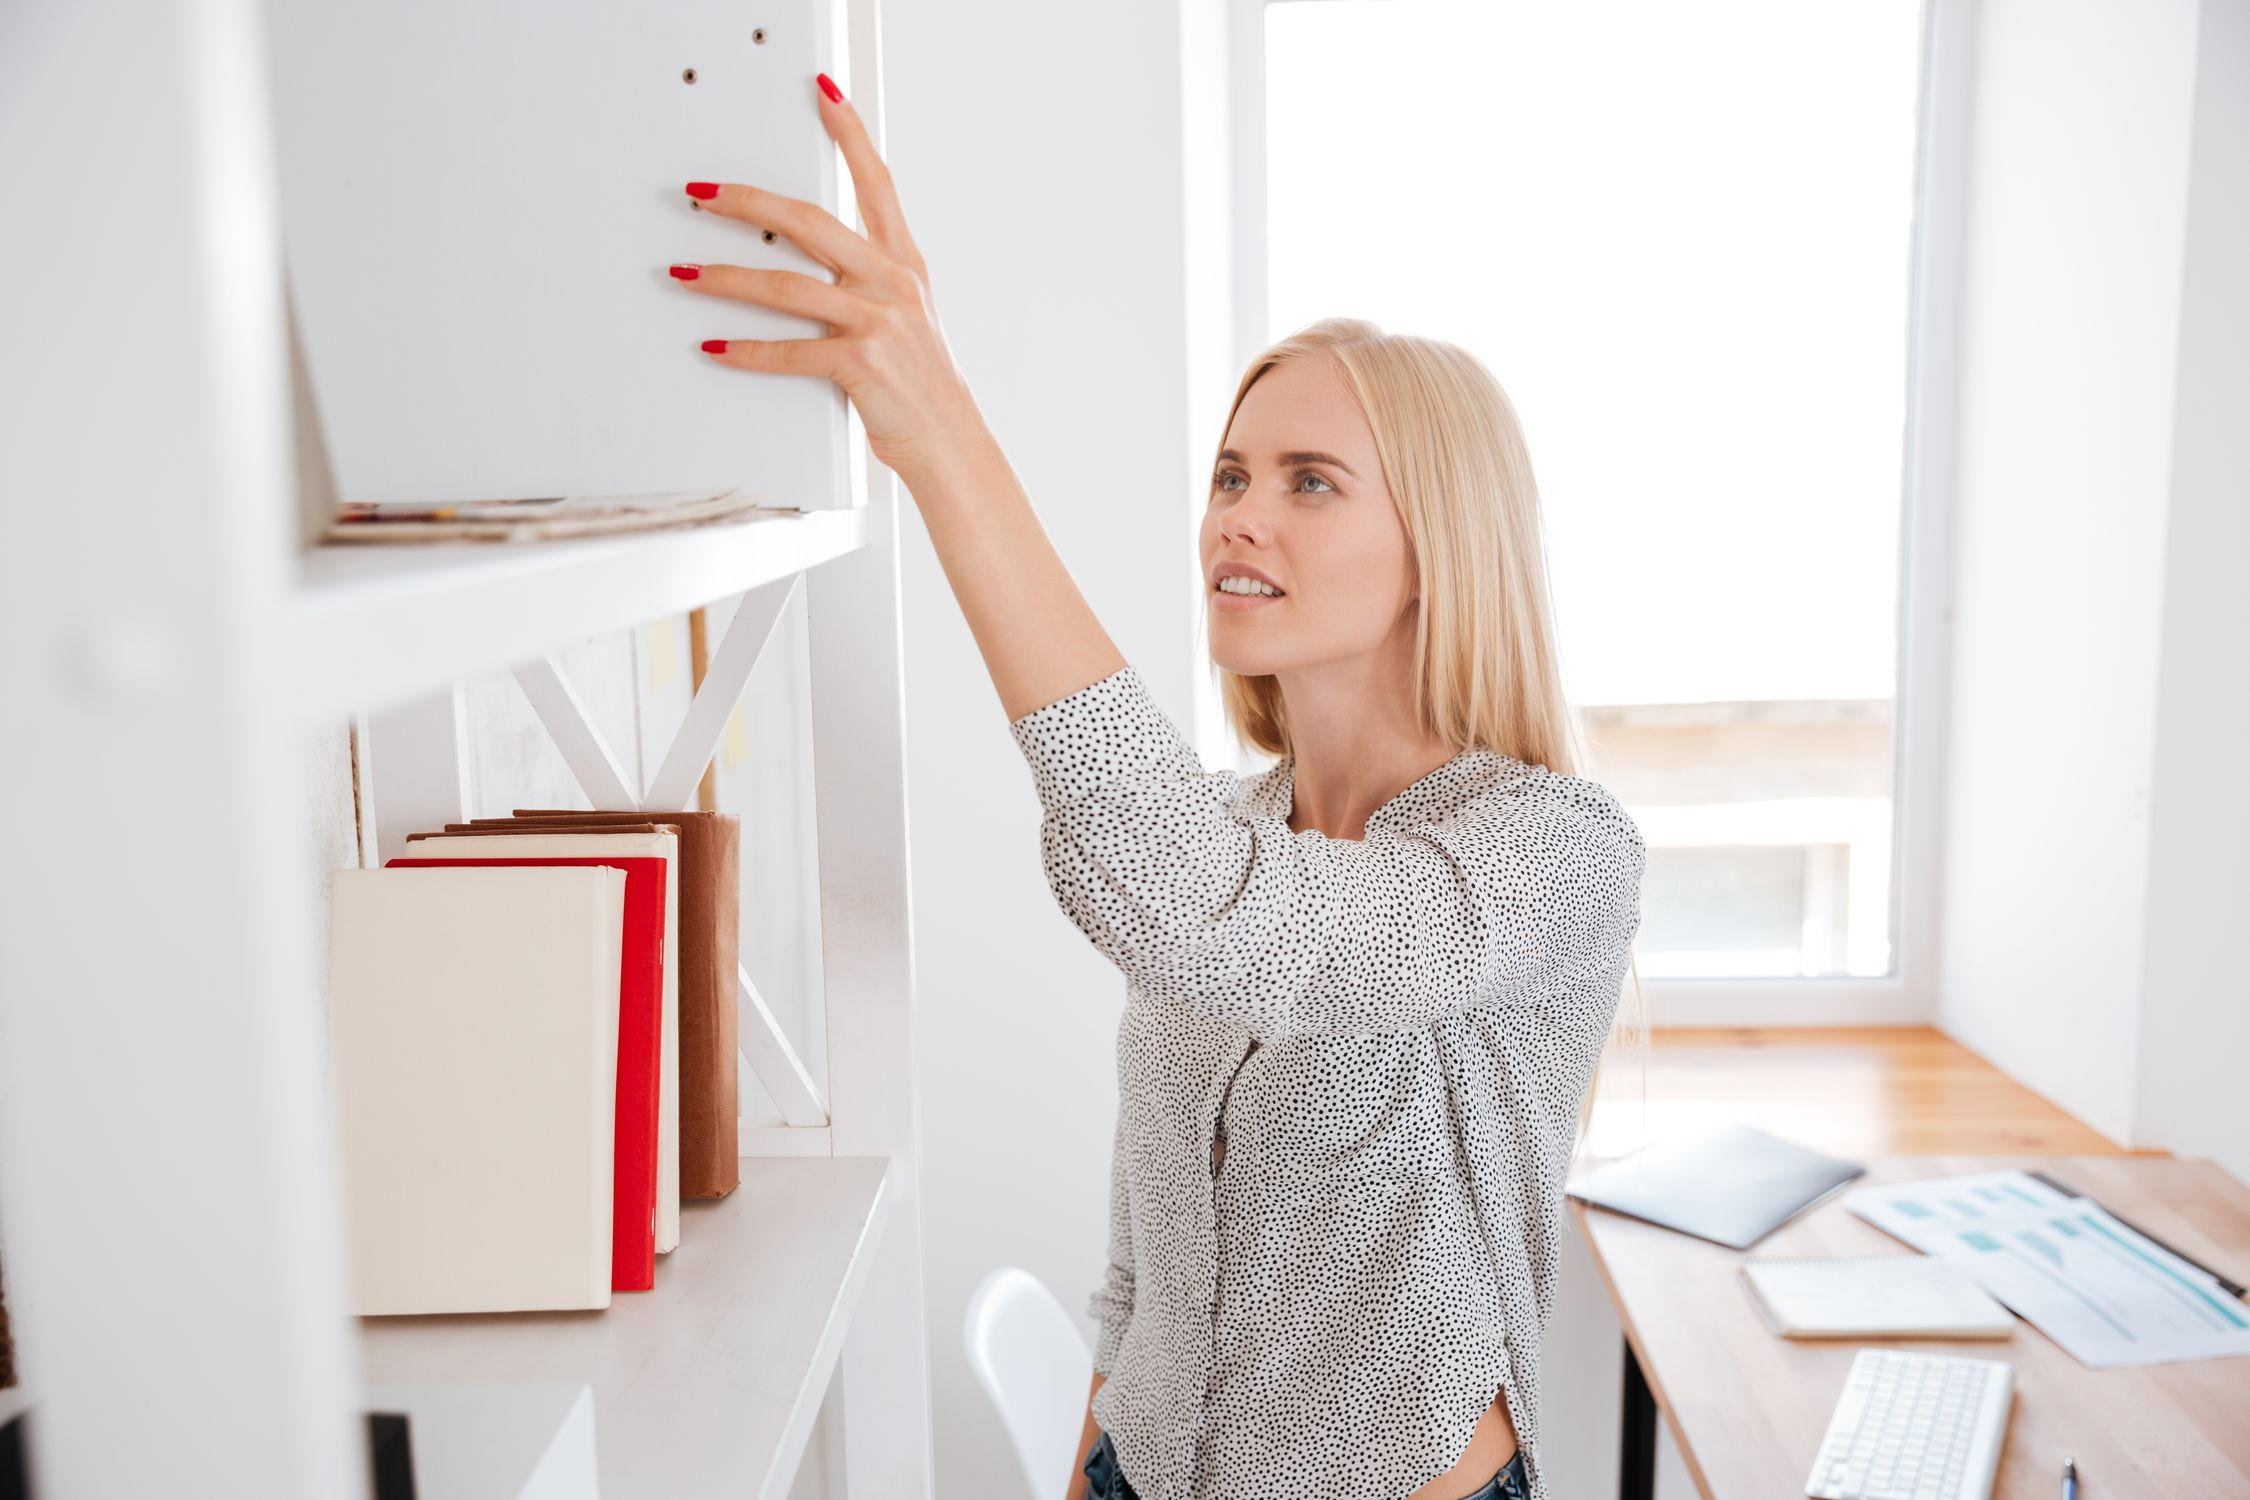 Businesswoman taking book from a shelf while standing in office